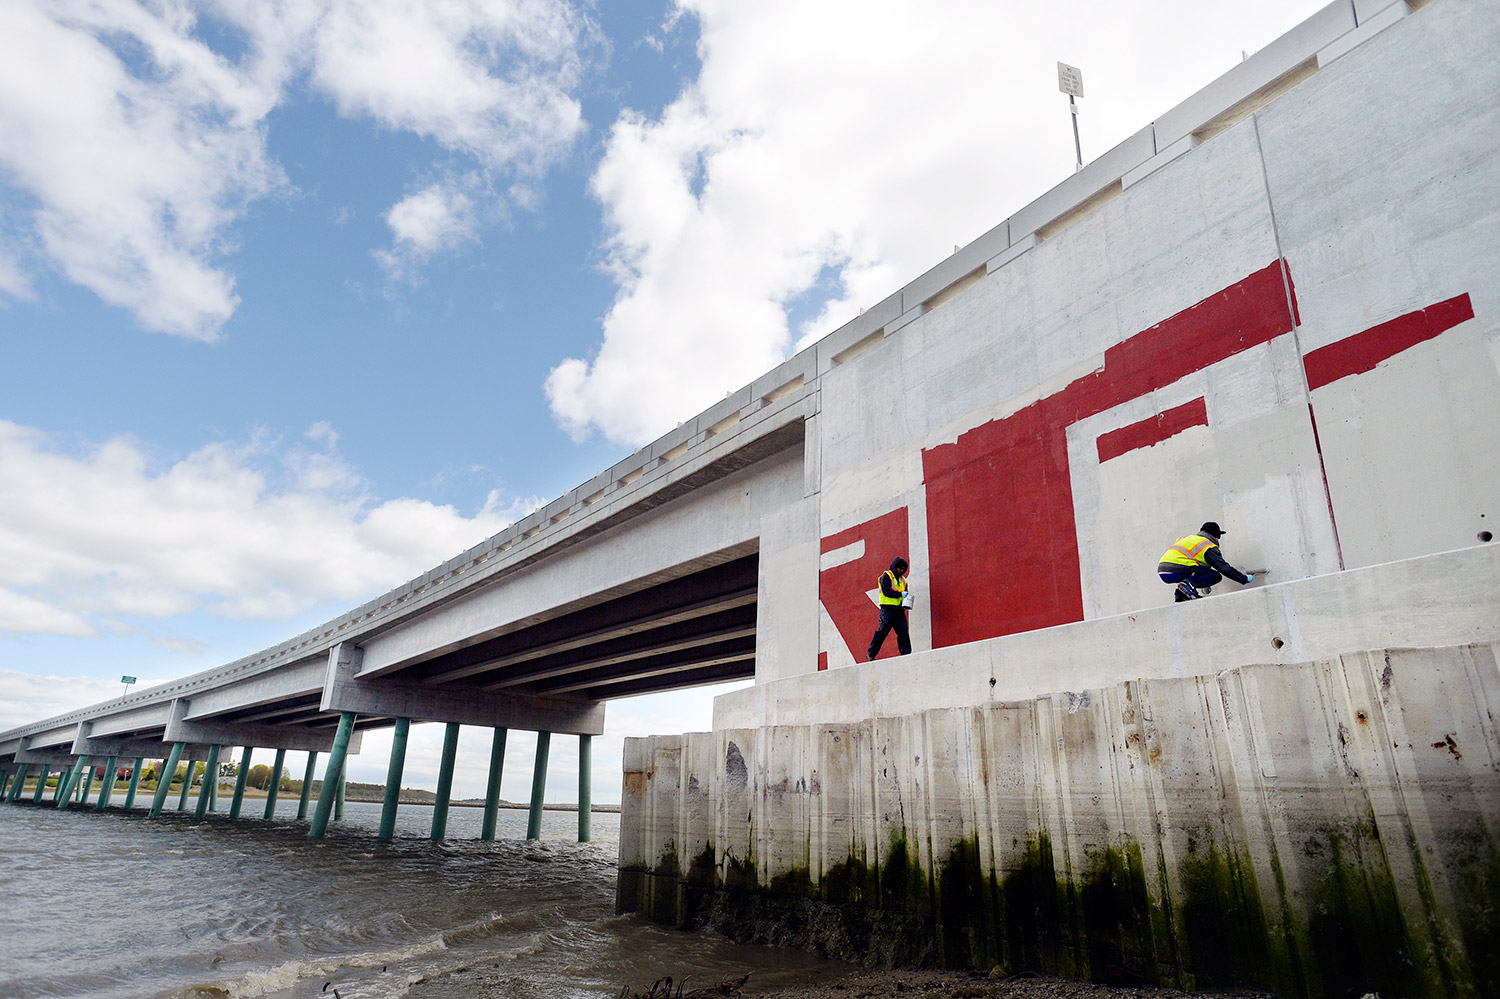 Kane and Lewis navigate their way along the side of the Martin's Point Bridge where the concrete was tagged with red paint. Youth Building Alternatives is a nationally accredited educational program that works with young men and women who have dropped out of high school.